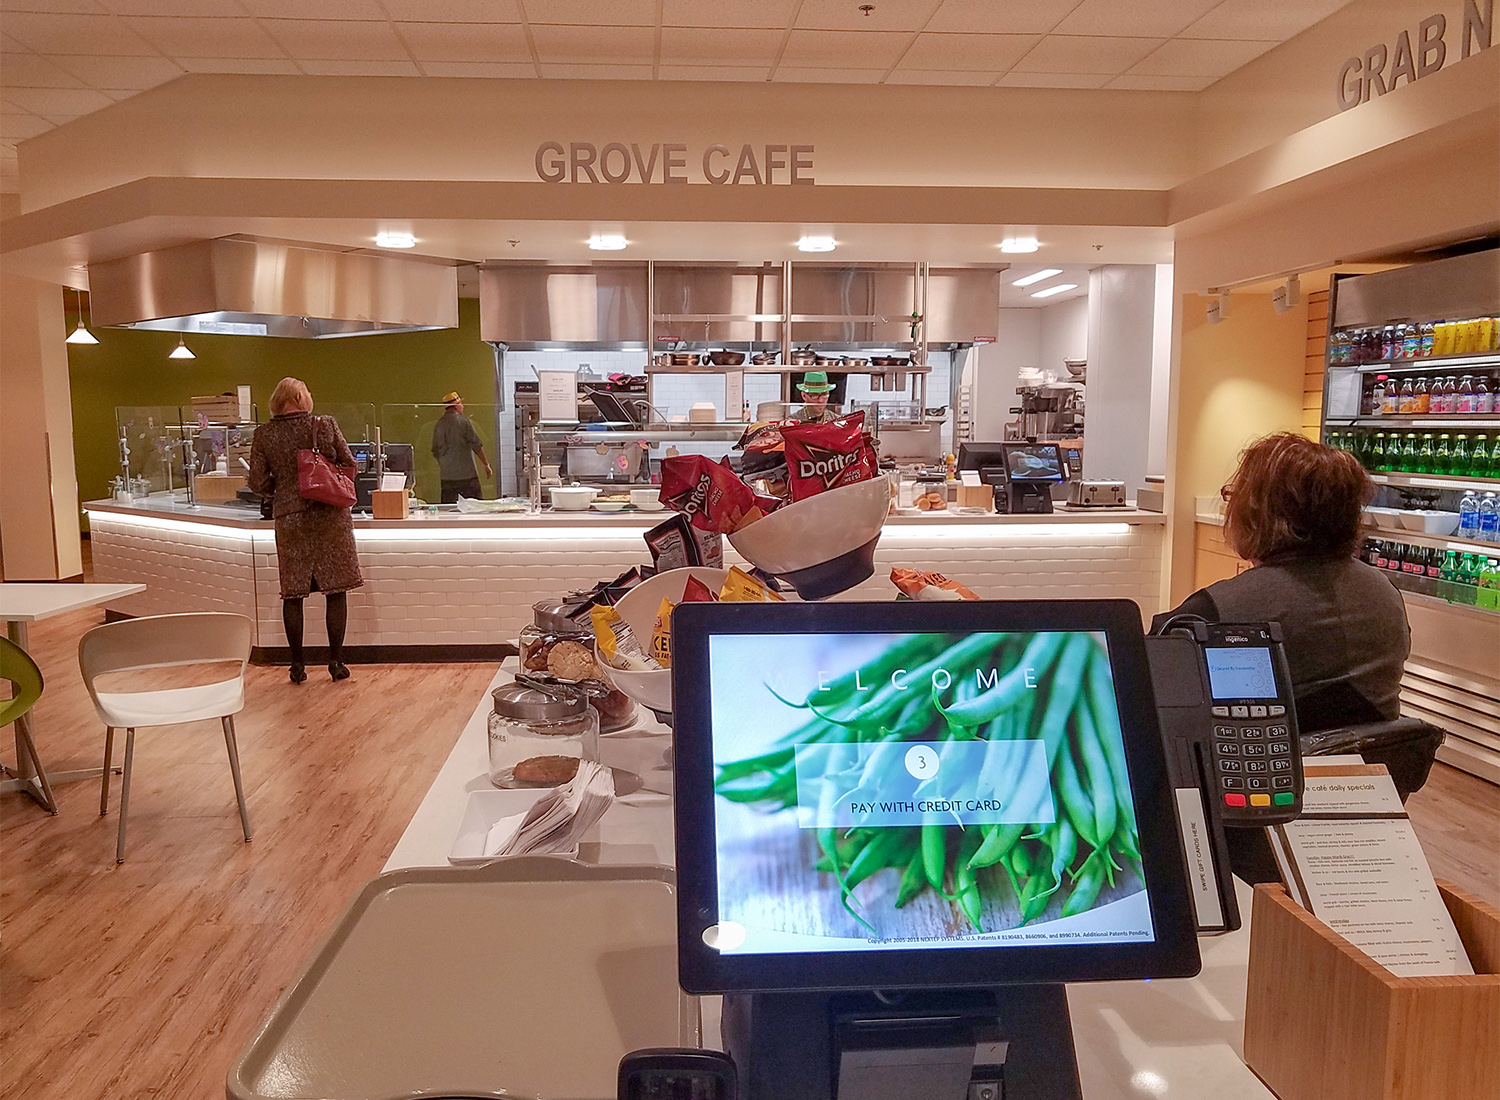 Grove Cafe in the Redwood Credit Union headquarters in Santa Rosa. Heather Irwin/PD